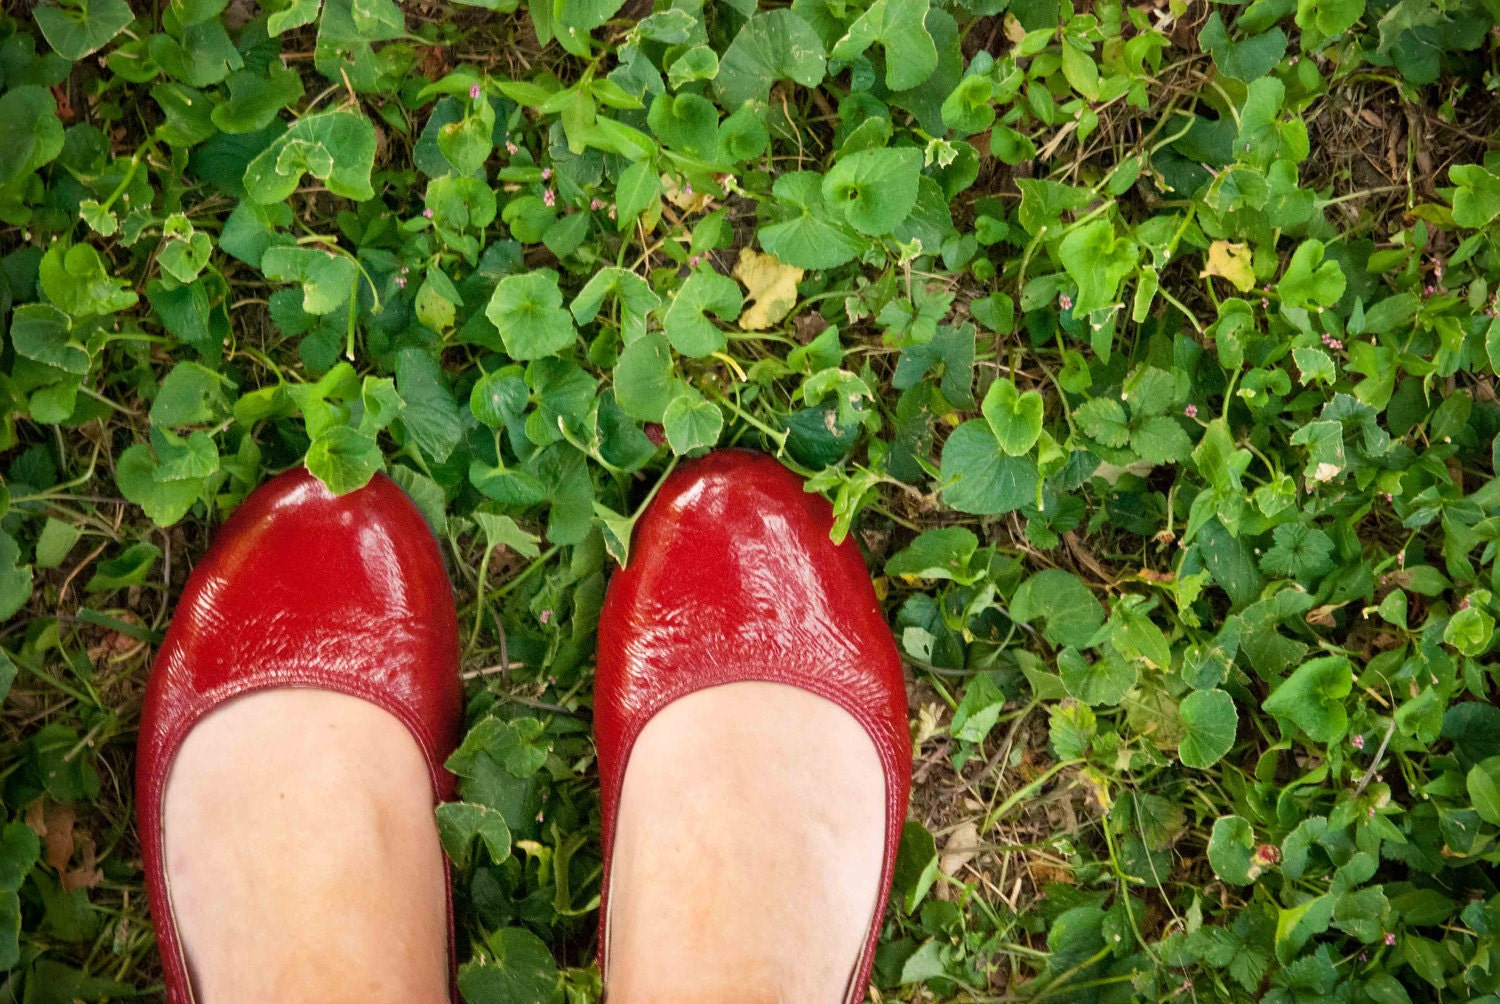 Little Red Shoes - 5 X 7 Photography Photo Art Print - Red Shoes Clover Grass Red Green Fashion